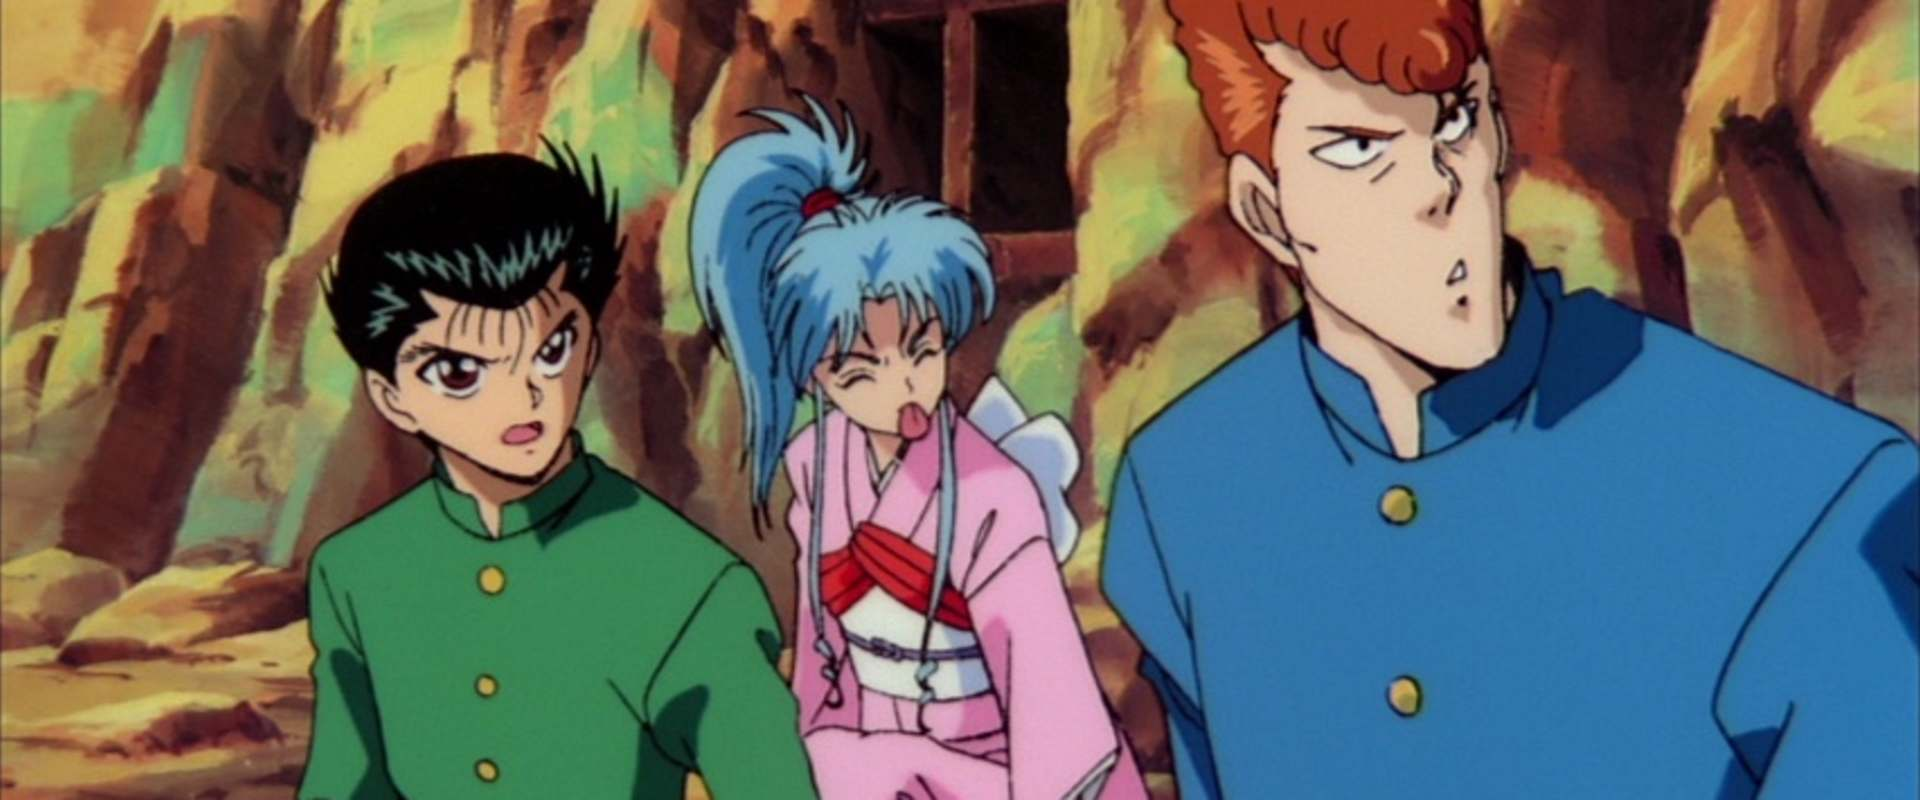 Yu Yu Hakusho: The Movie background 1